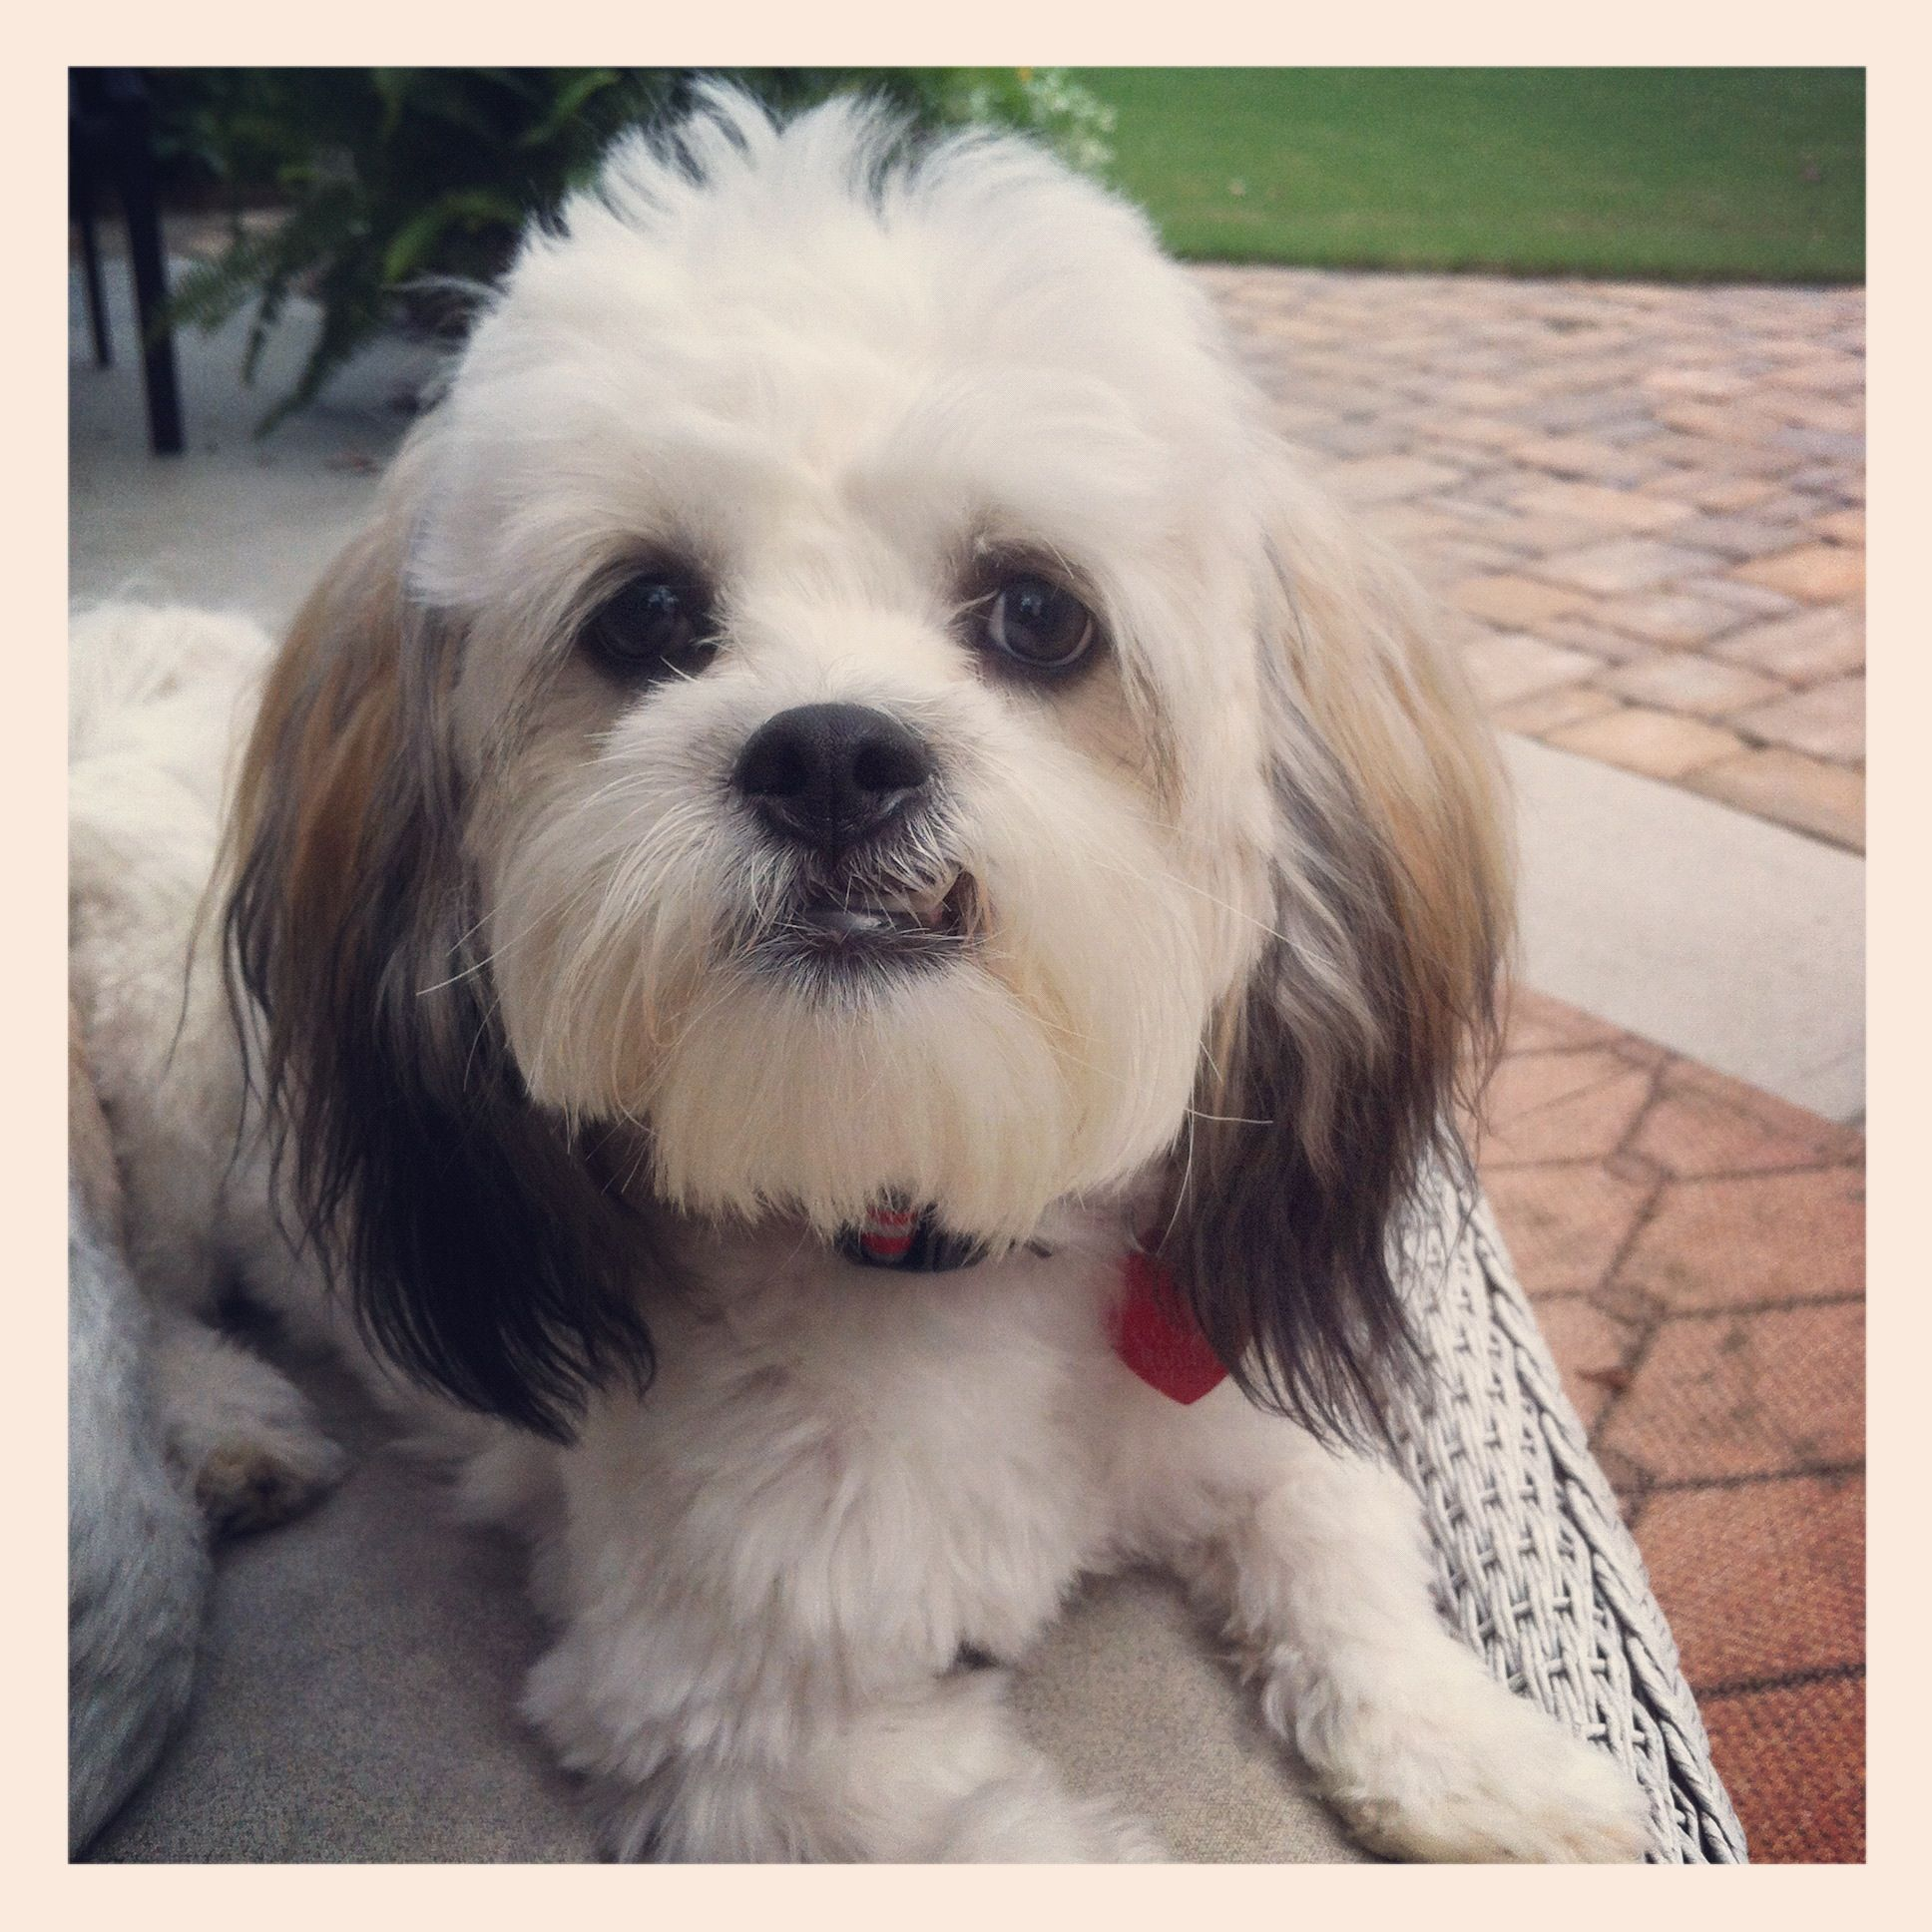 This Dog Seriously Looks Exactly Like My Dog Bandit A Bichon Shih